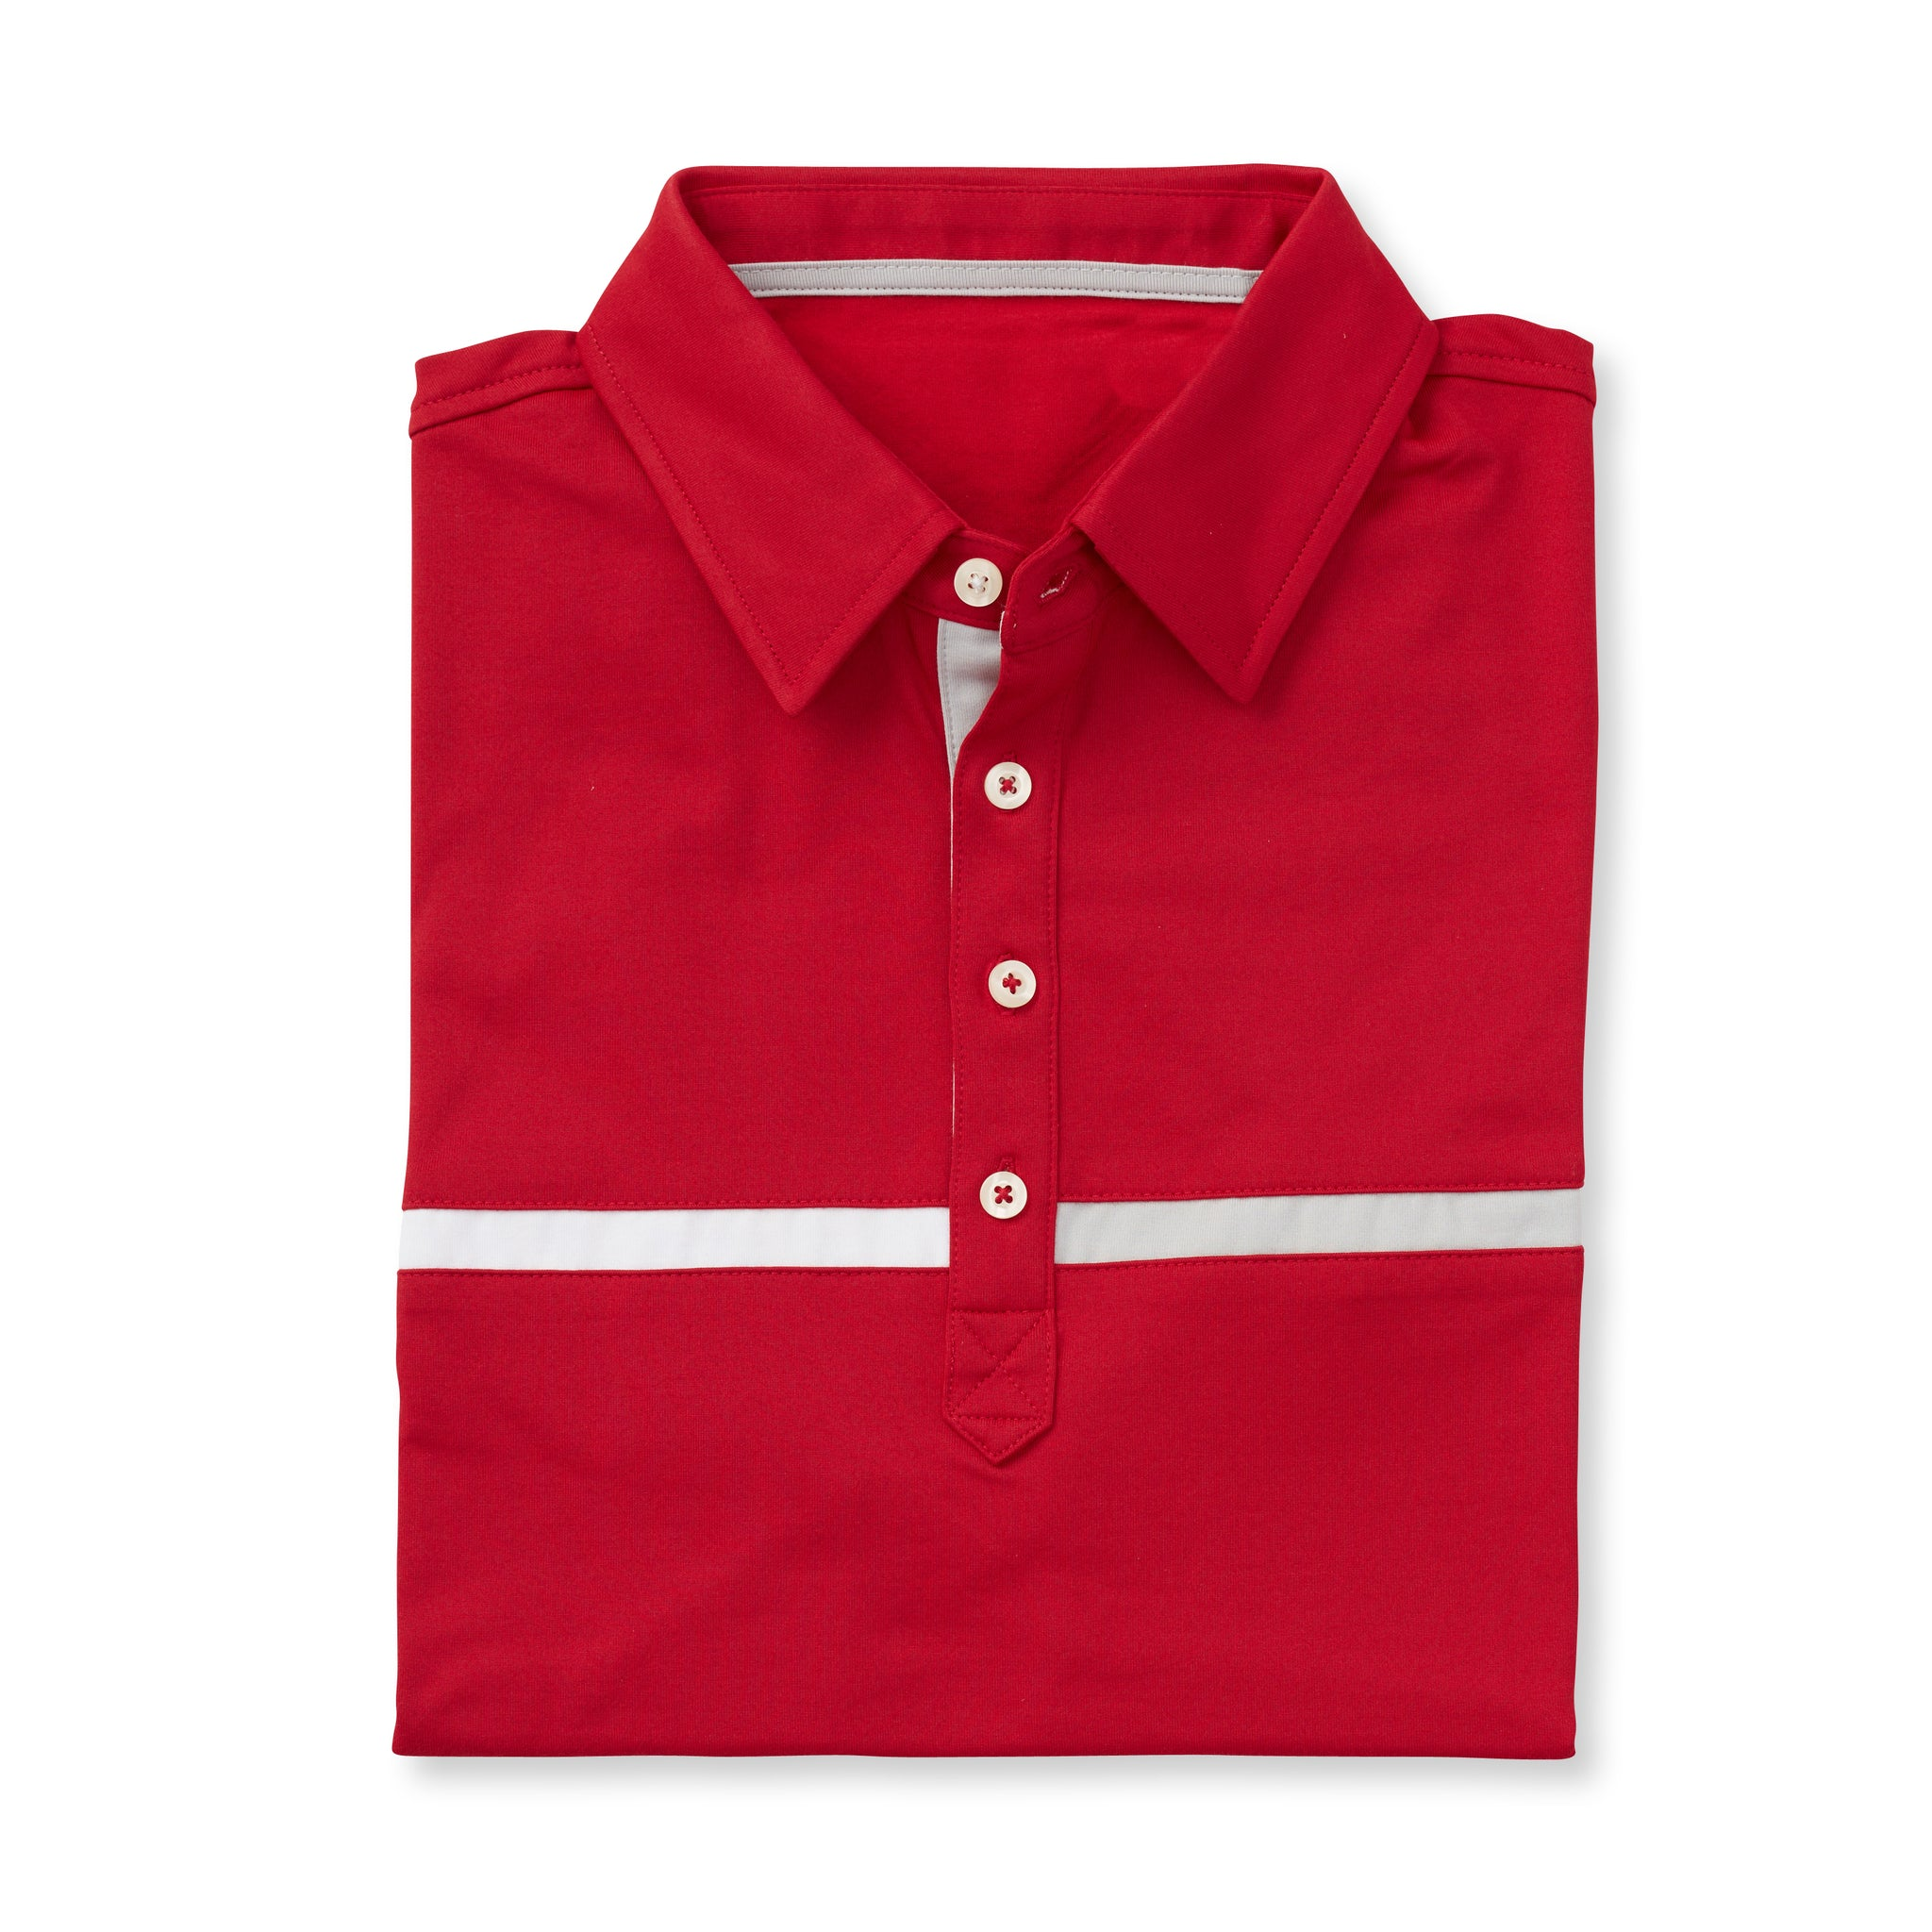 LUXTEC Champions Color Block Short Sleeve Polo - Crimson IS72420